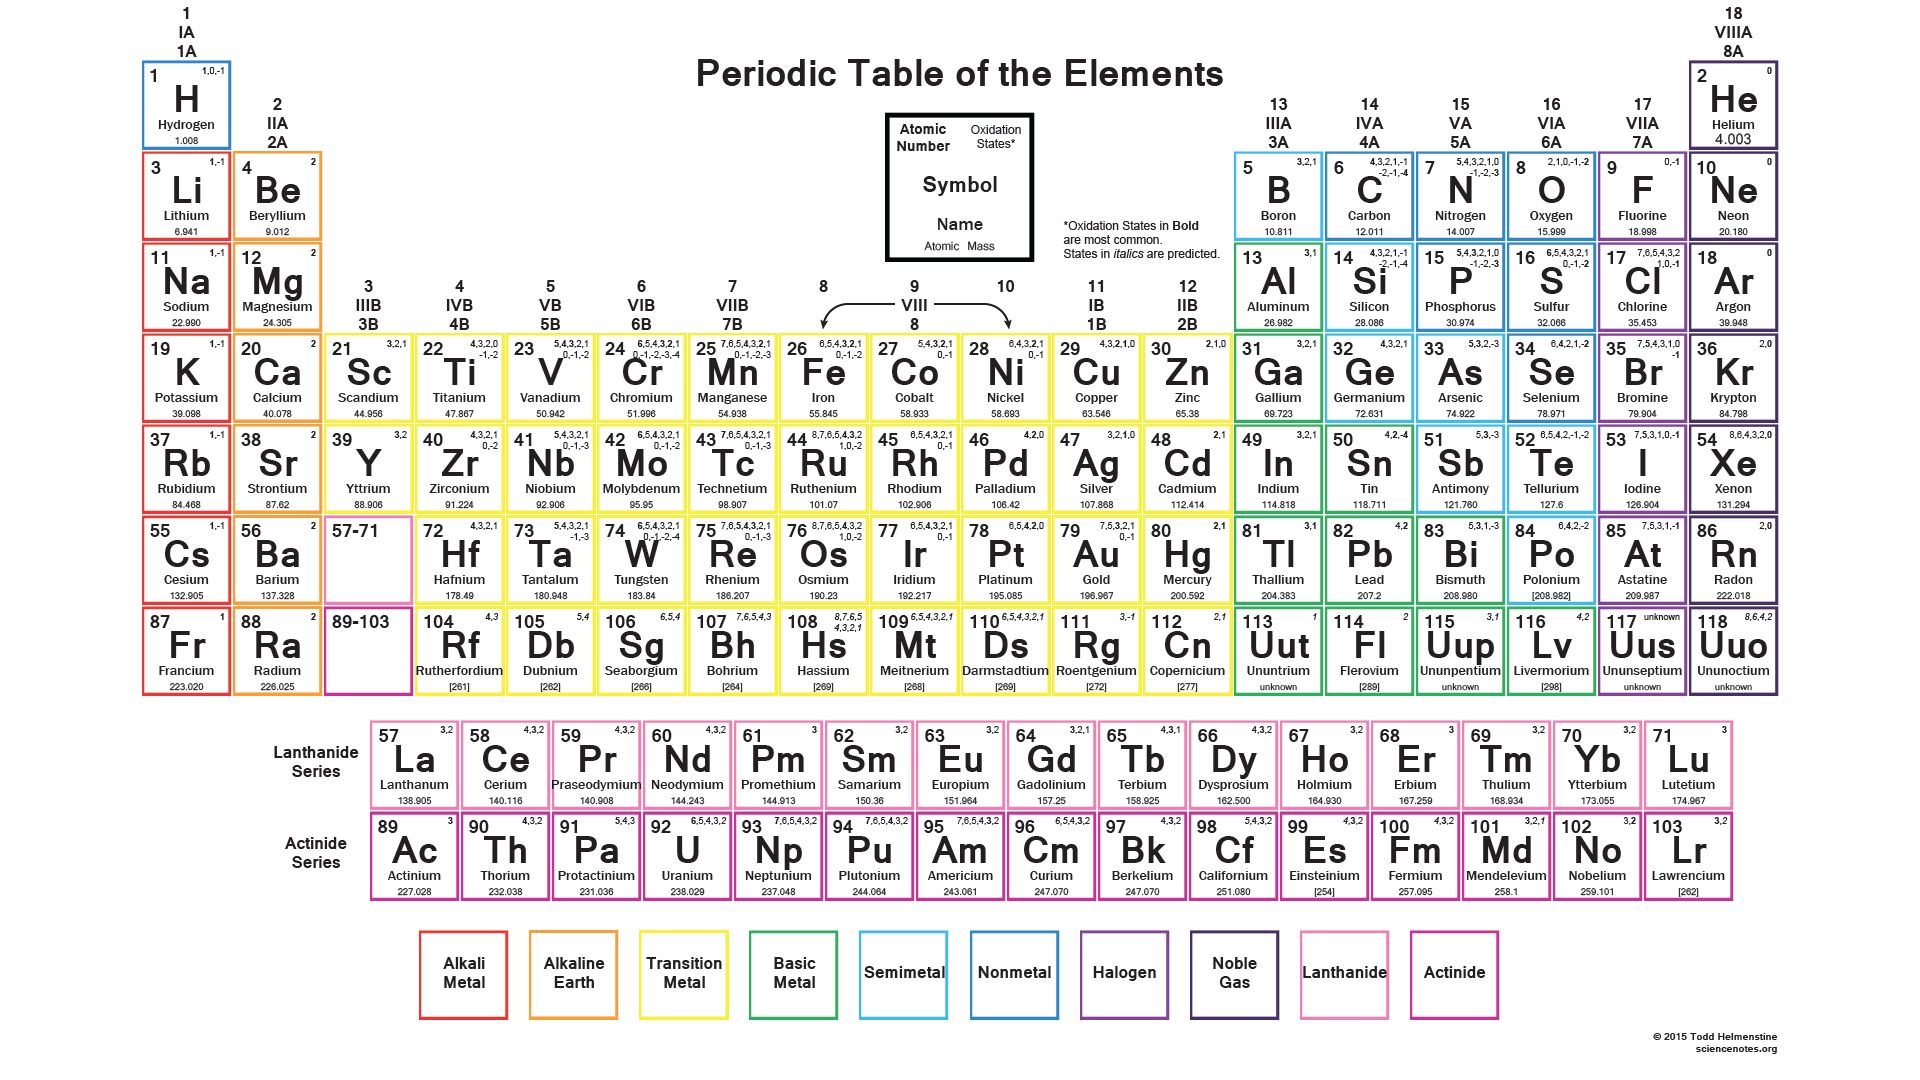 Printable periodic tables for chemistry science notes and projects color periodic table with oxidation states urtaz